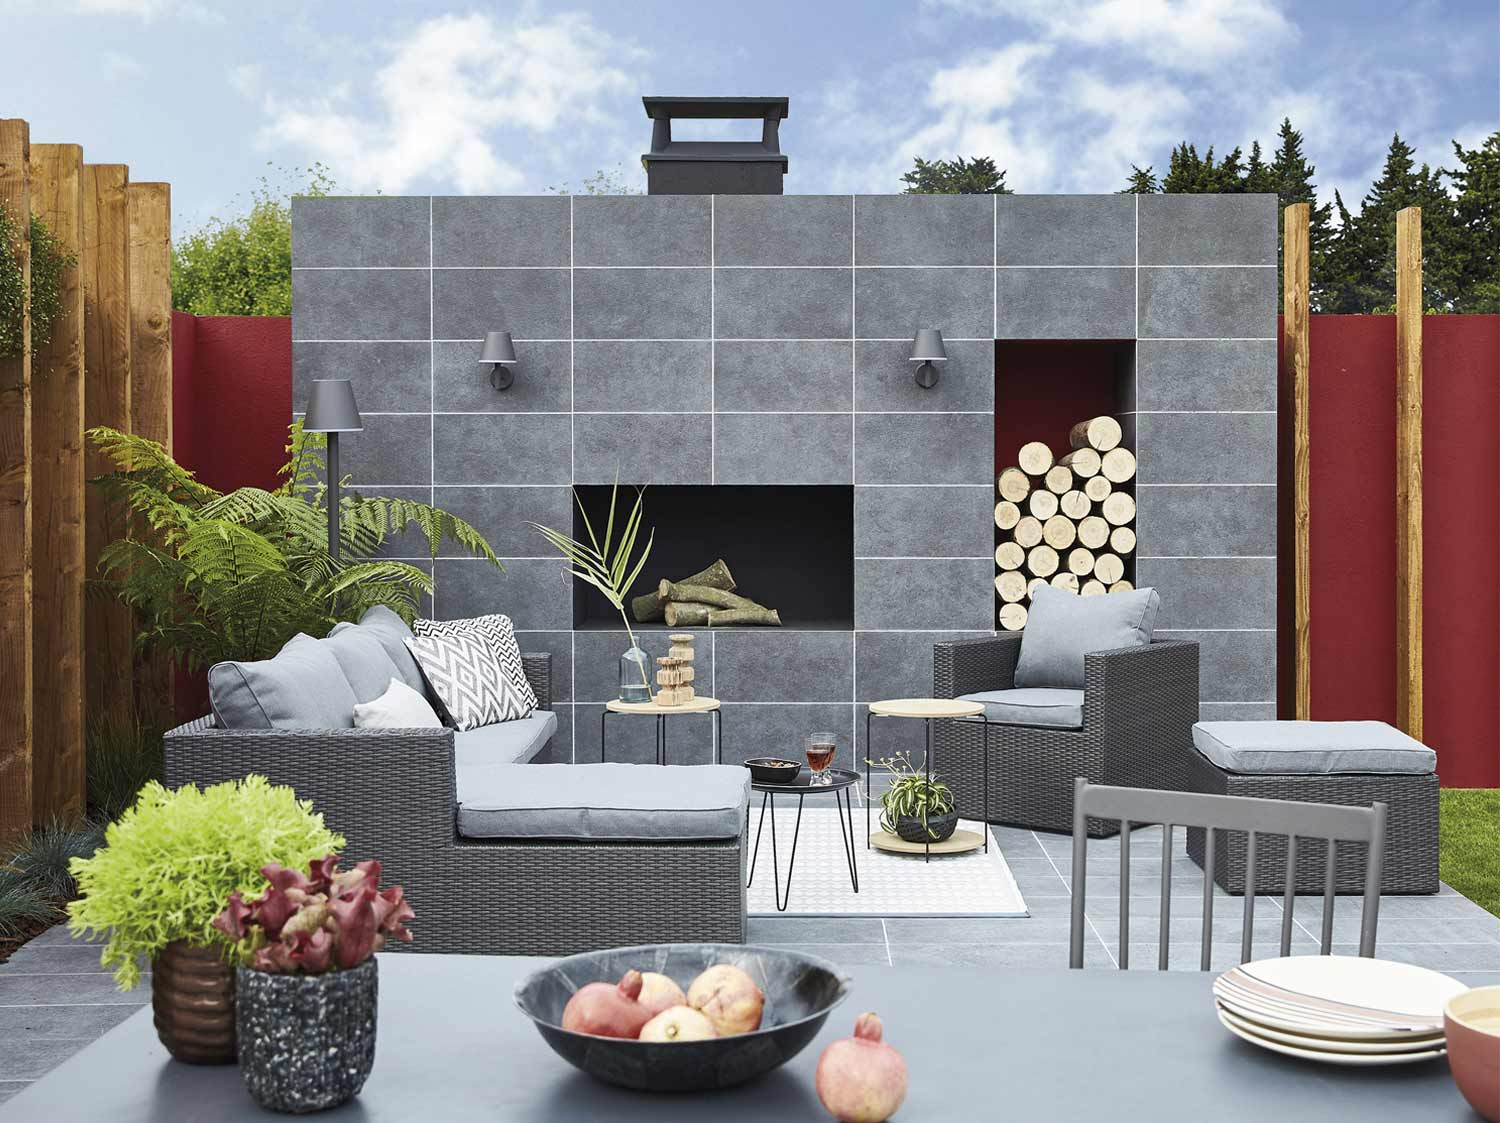 Modele Terrasse Exterieur - Fashion Designs